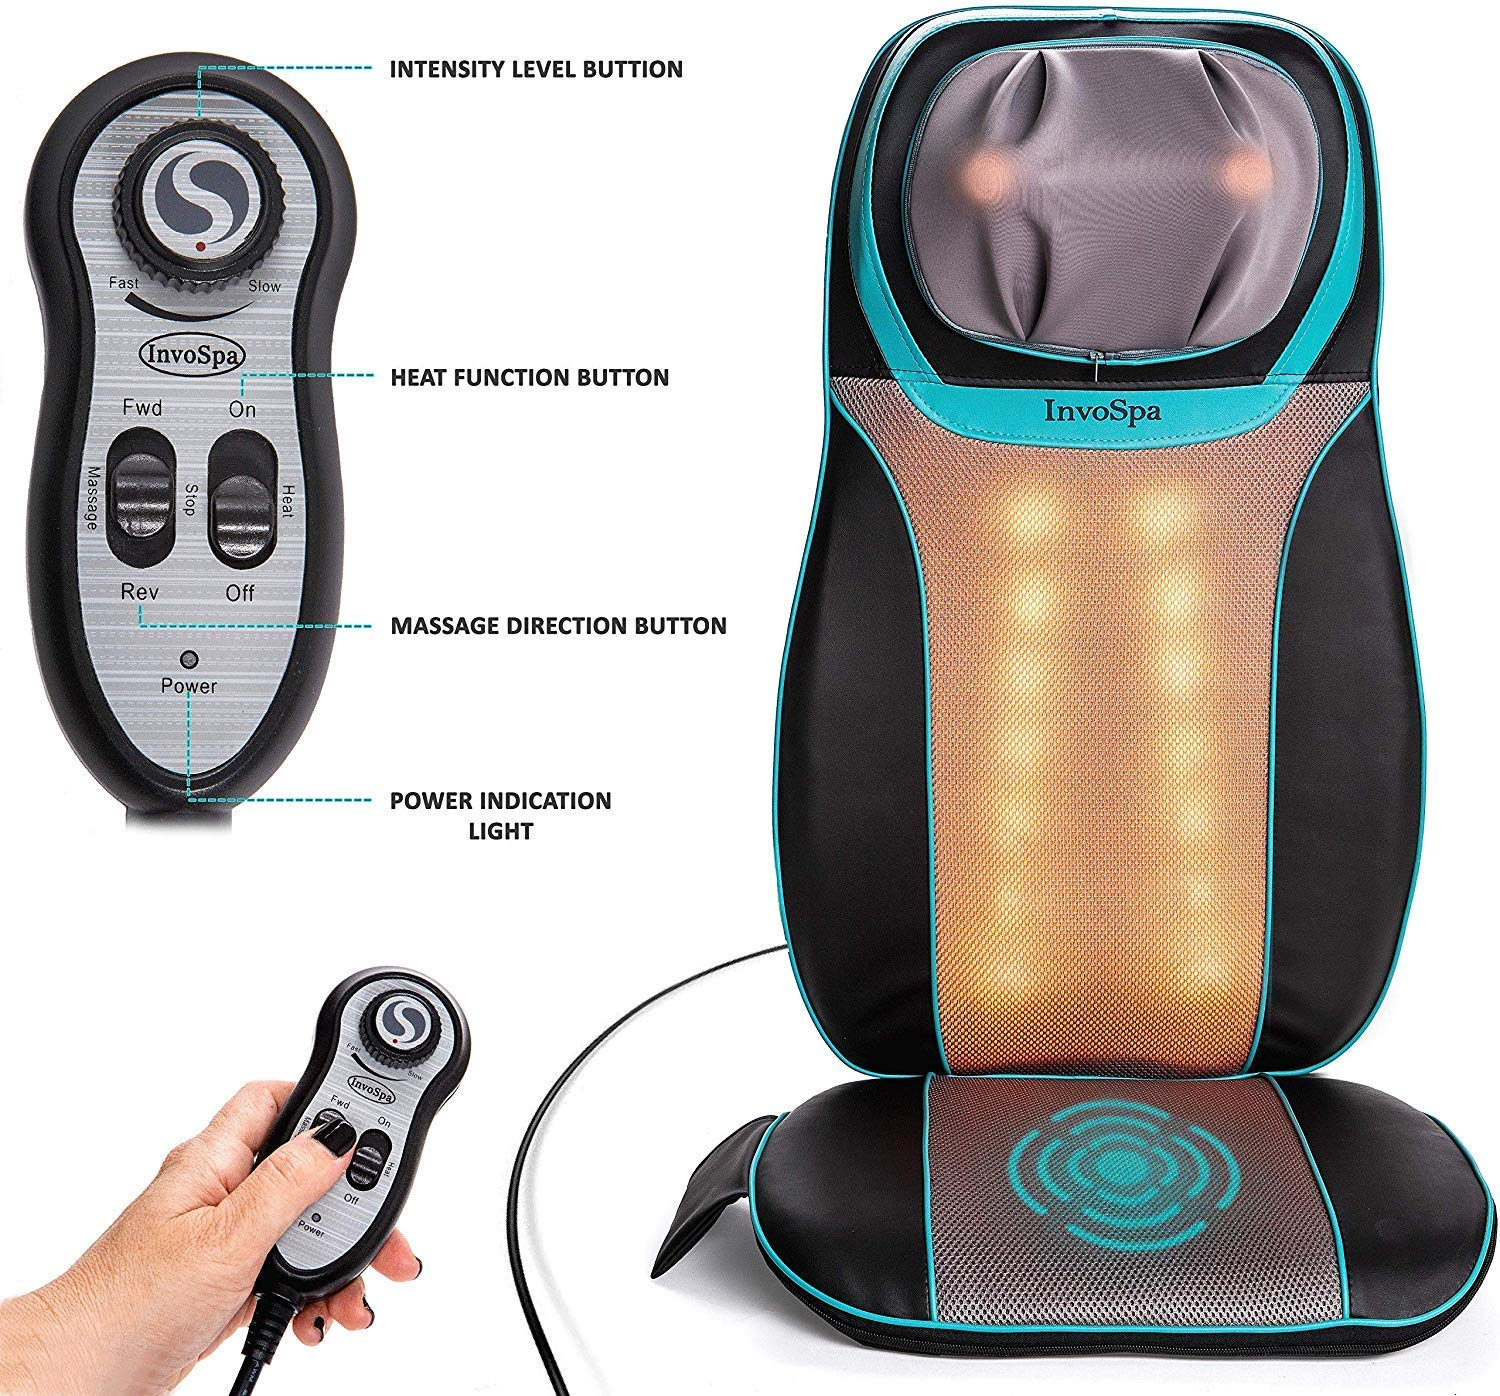 Shiatsu Neck and Back Massager Chair with Heat – Massage Seat Cushion with Rolling, Kneading Vibration – Full Back Shoulder Deep Tissue to Relieve Muscle Pain – for Home Office